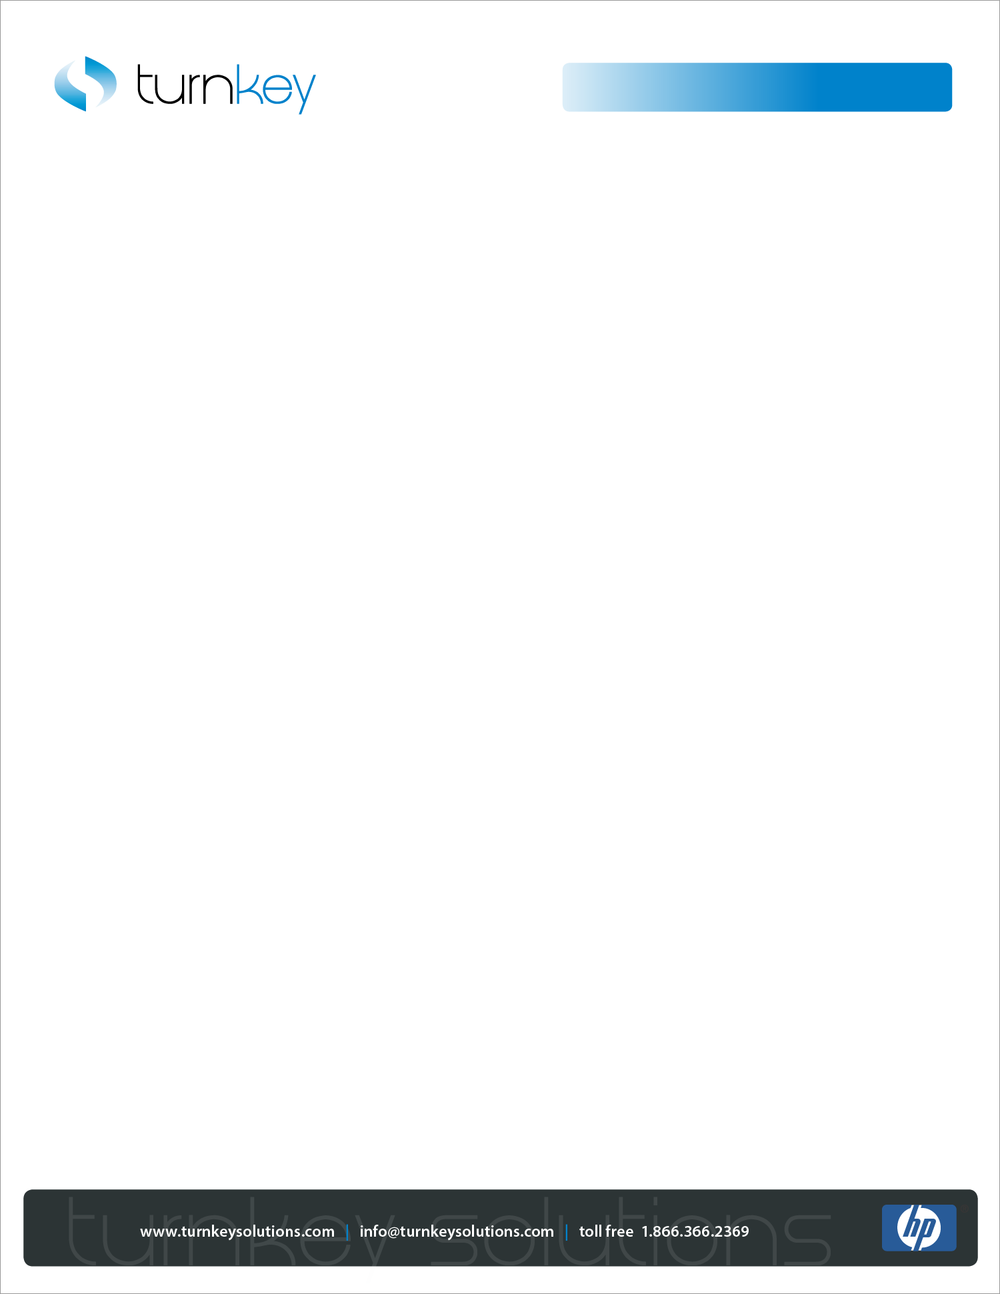 TurnKey_SS_layout_letterhead-01.png